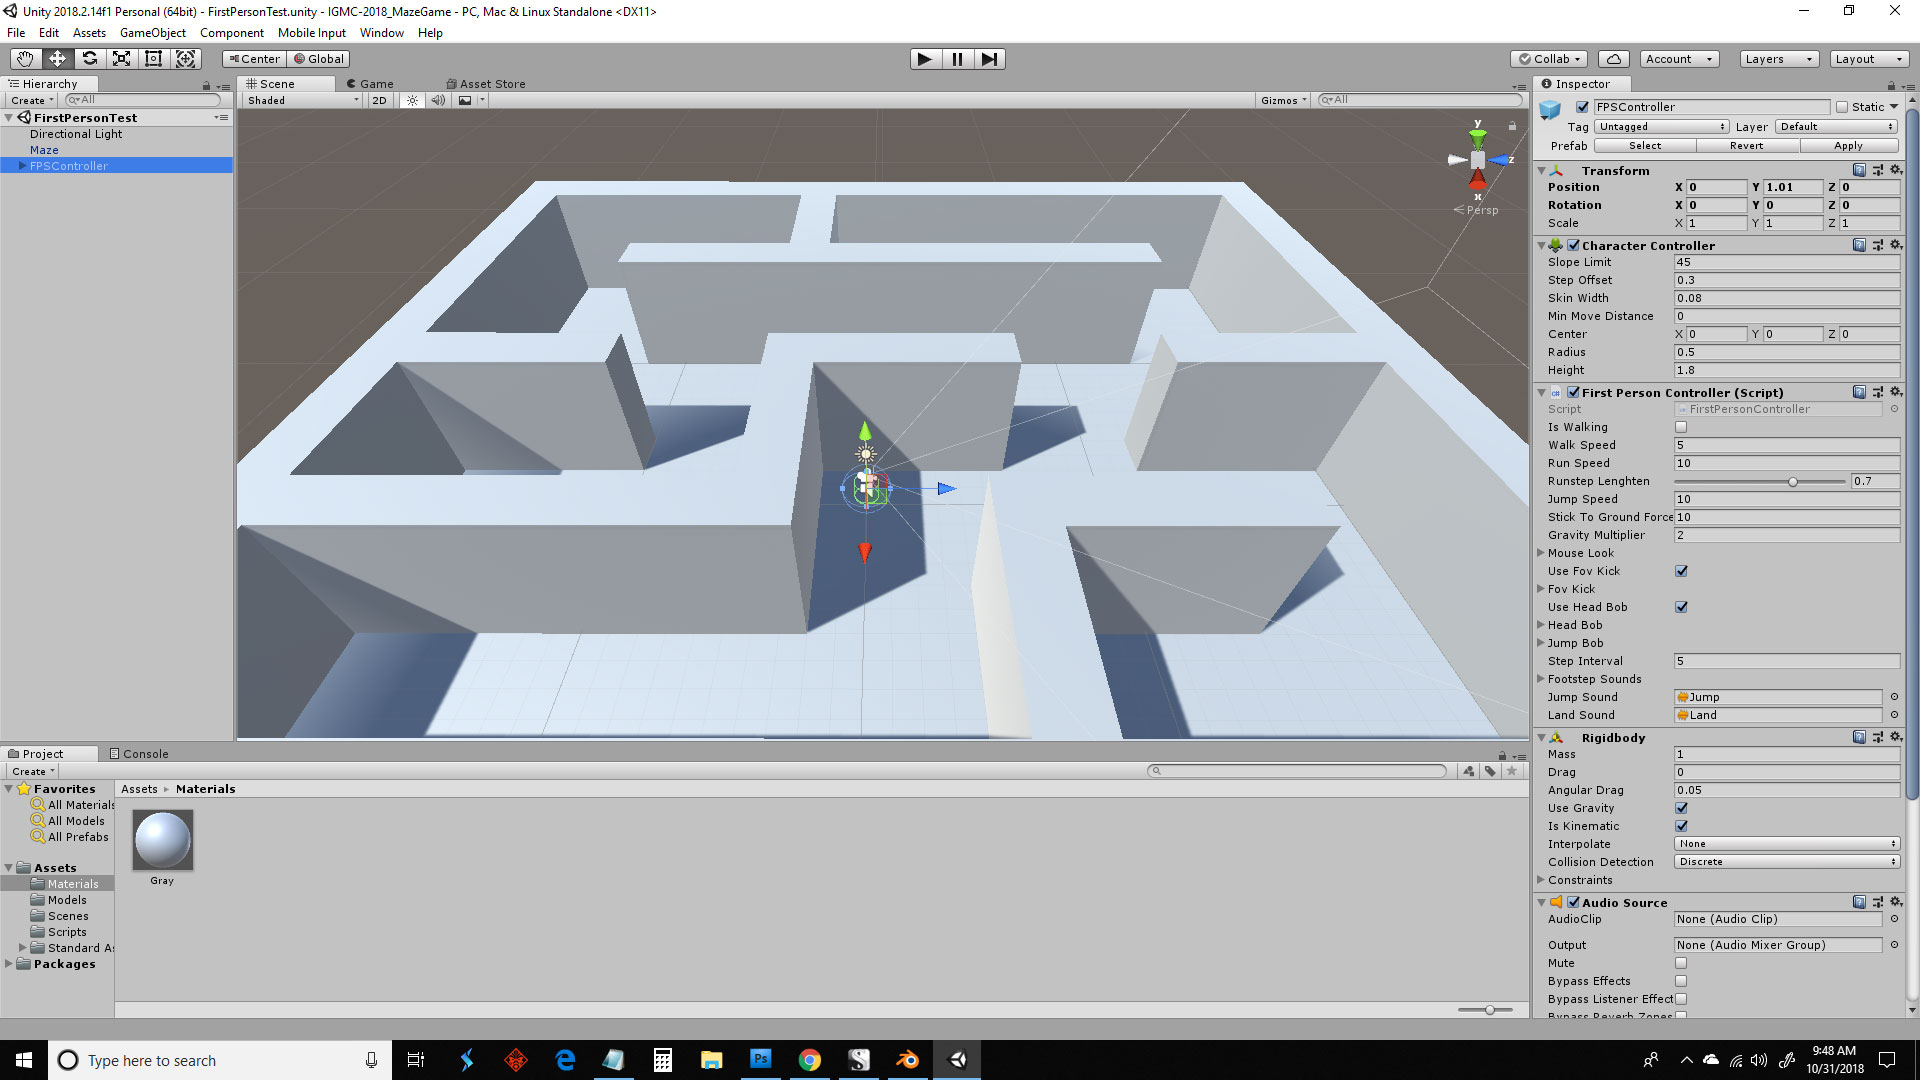 Project Maze Game: 3D Action-Adventure - Project Threads